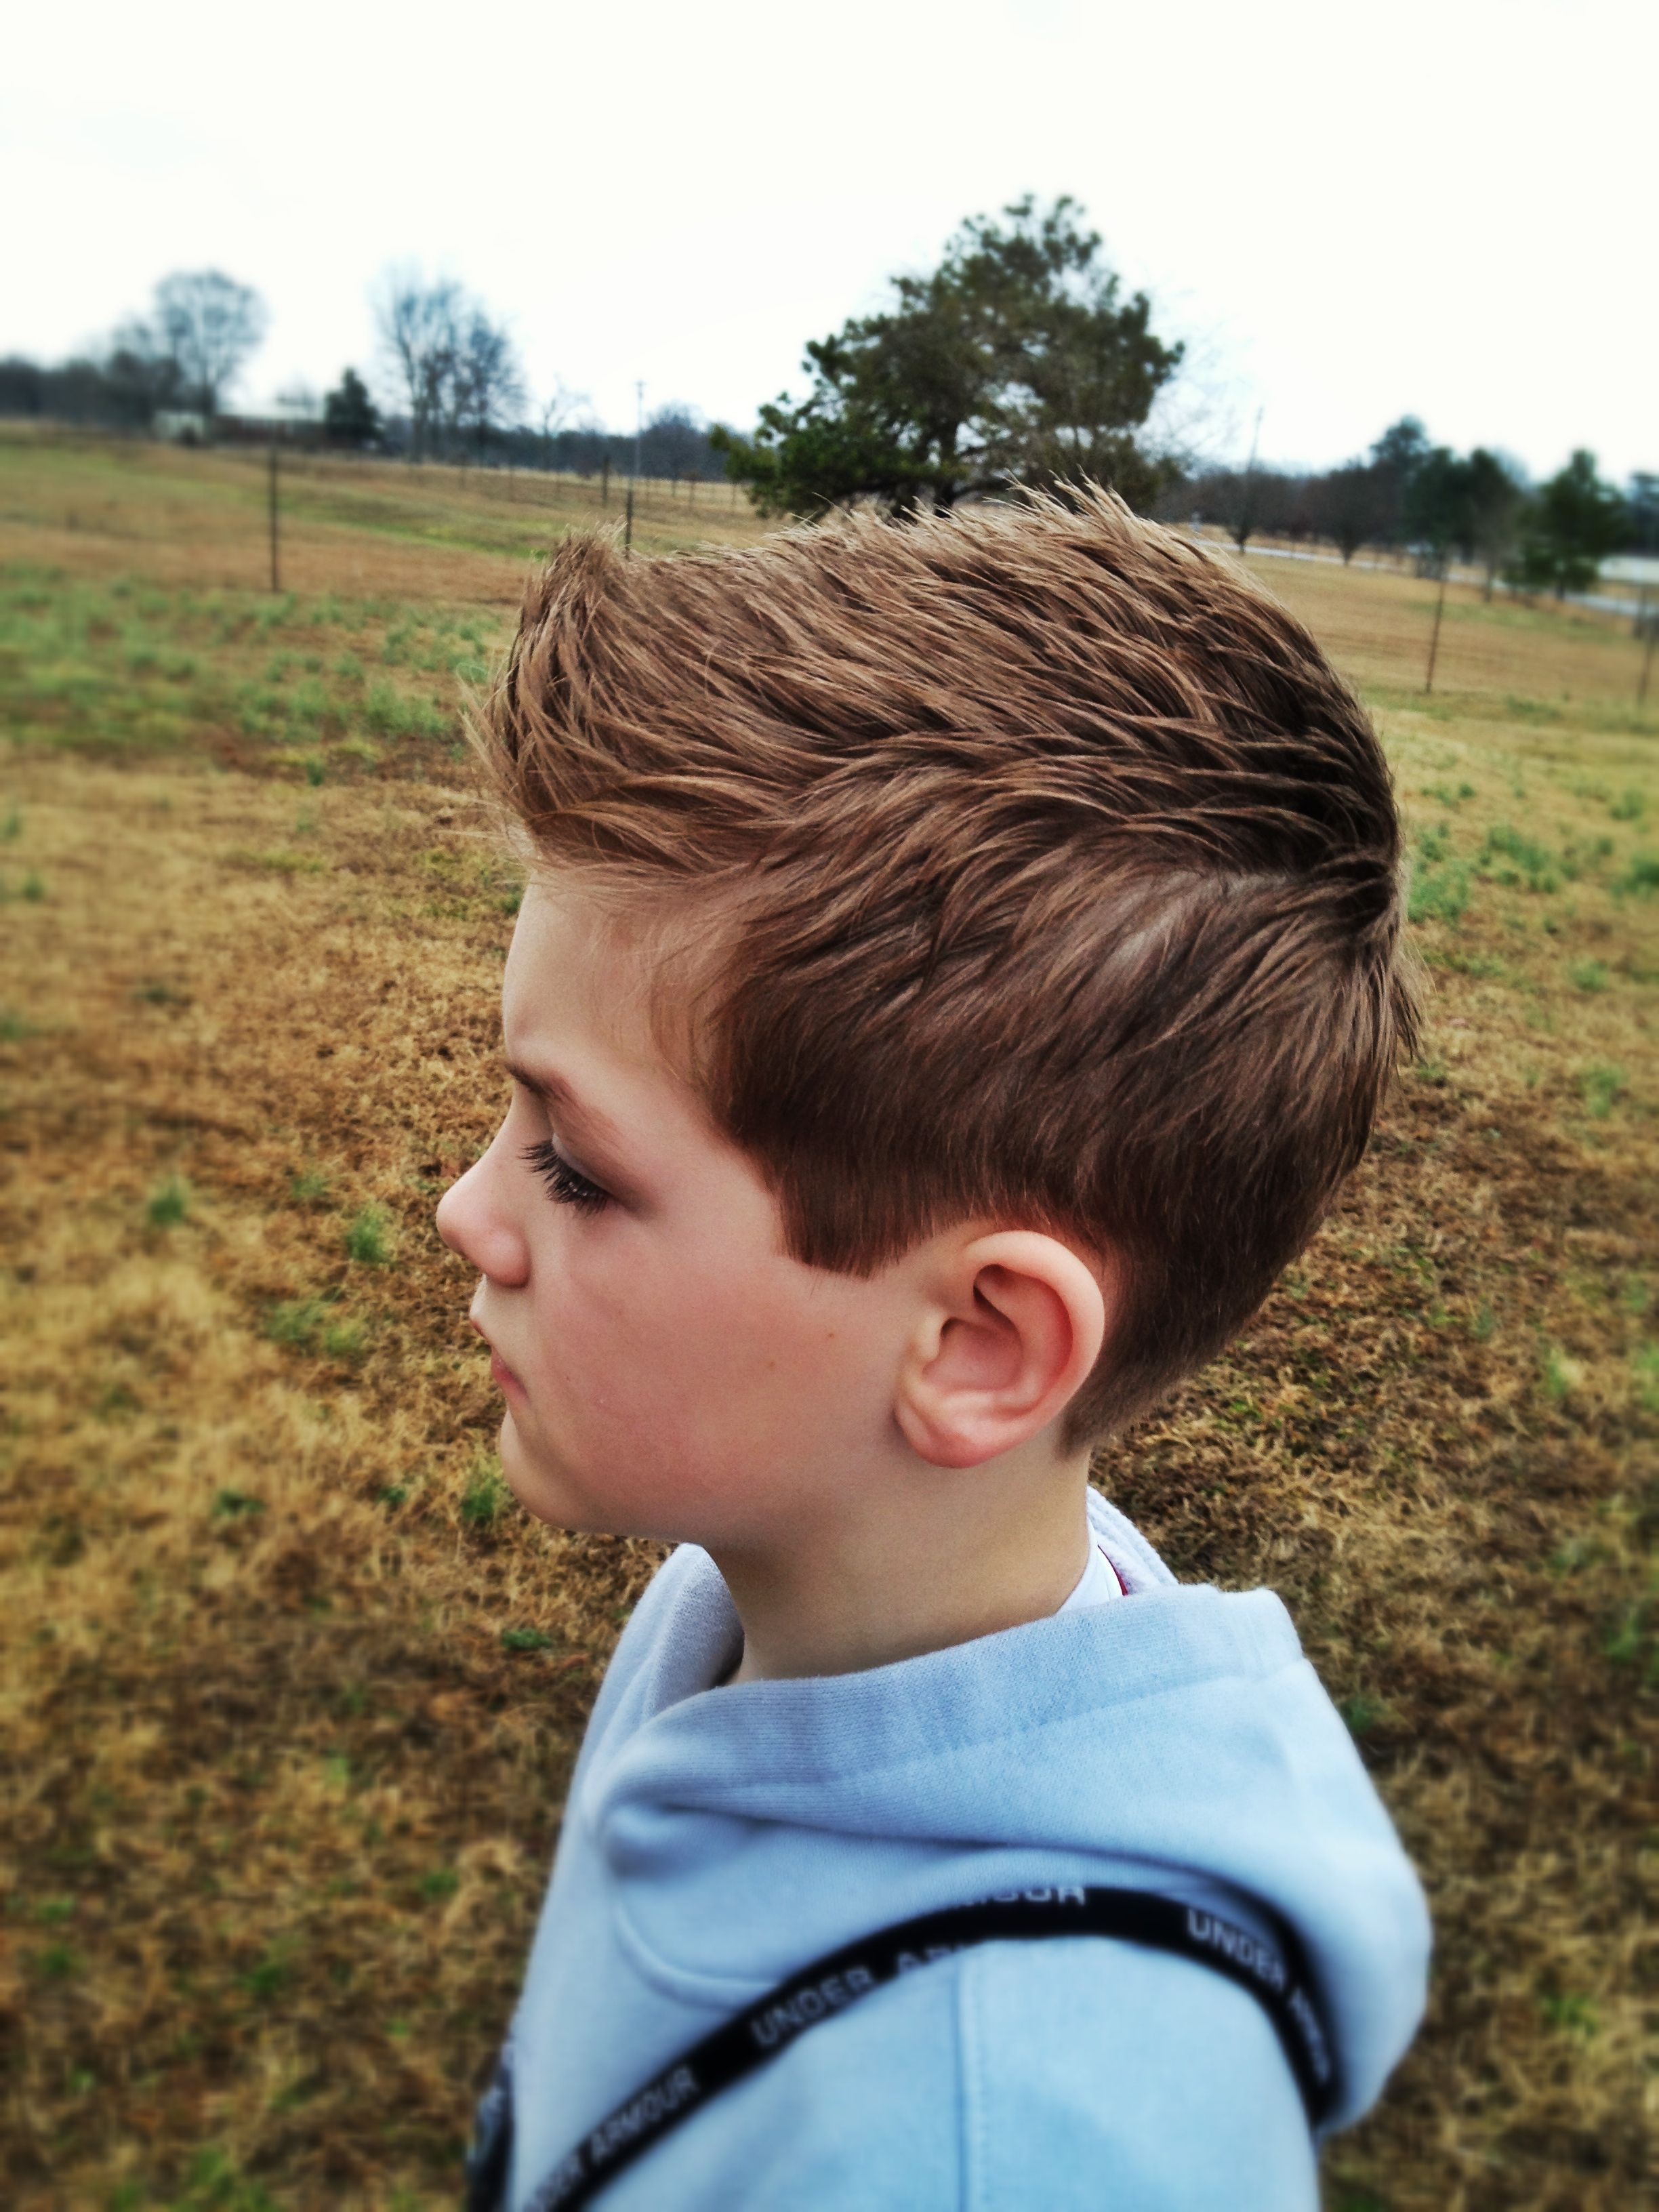 Hairstyles For Boys Interesting My Little Harley's New Hairstyle ~  Hairstyle For Harley